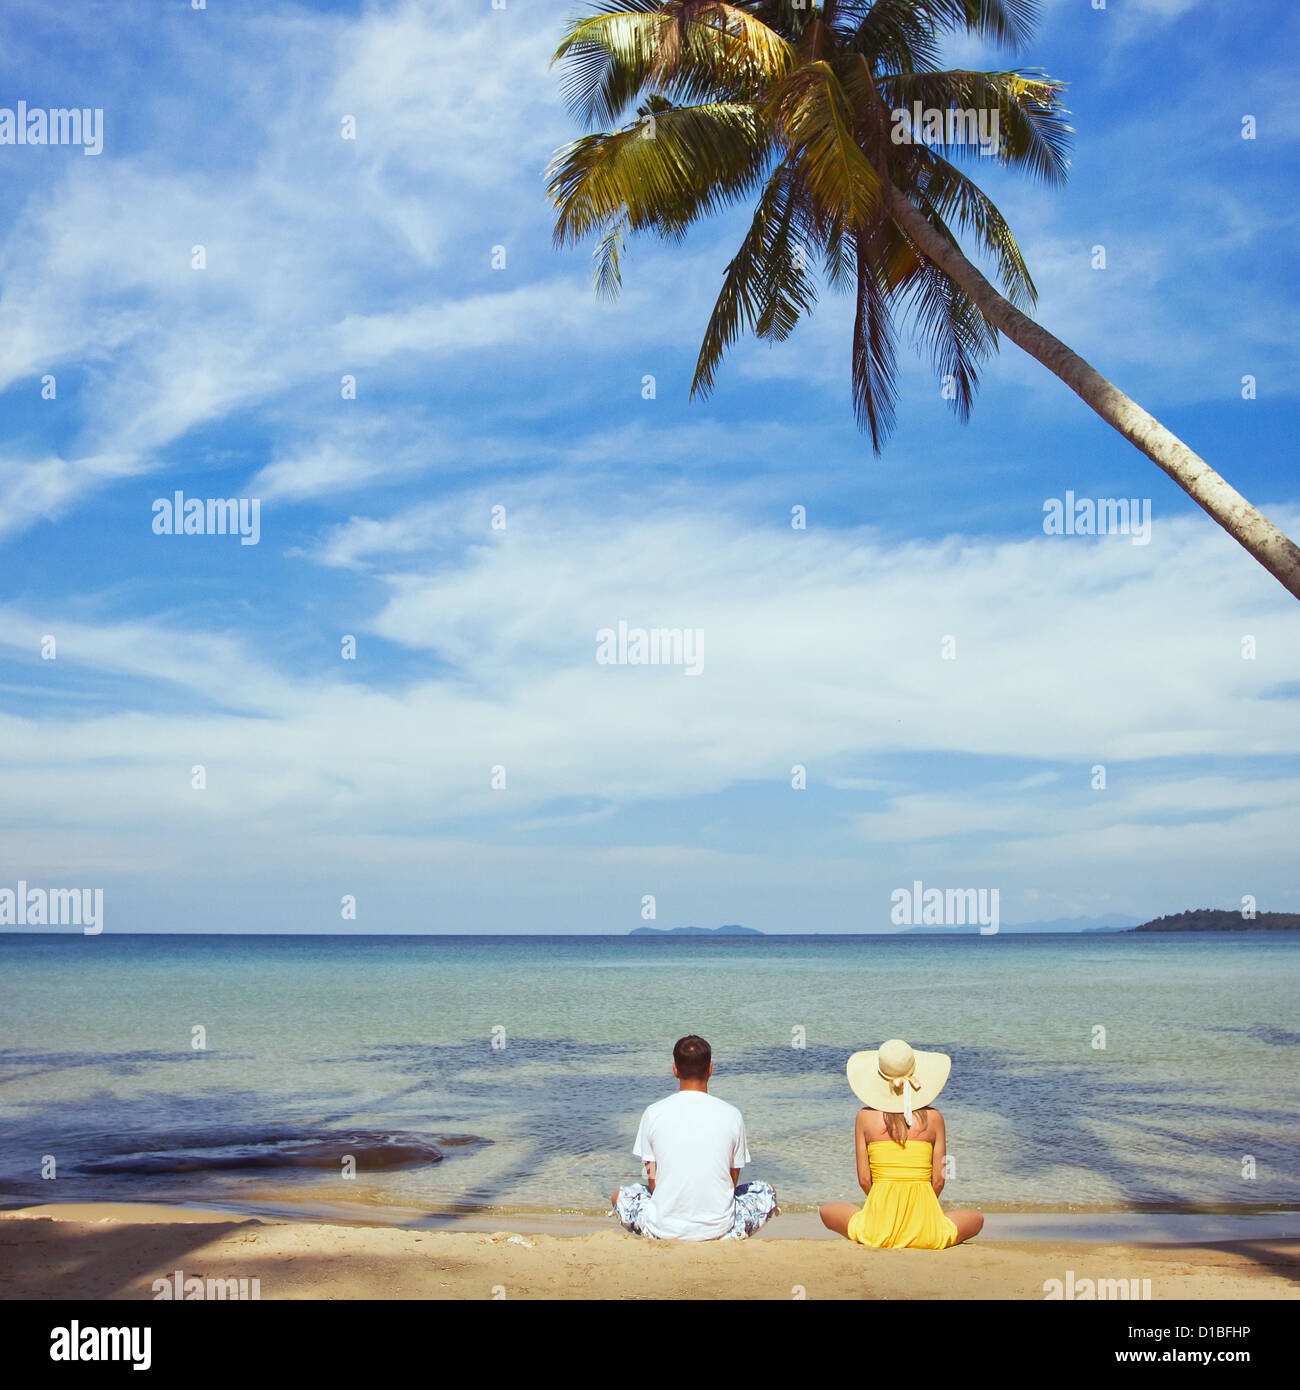 summer vacations - Stock Image